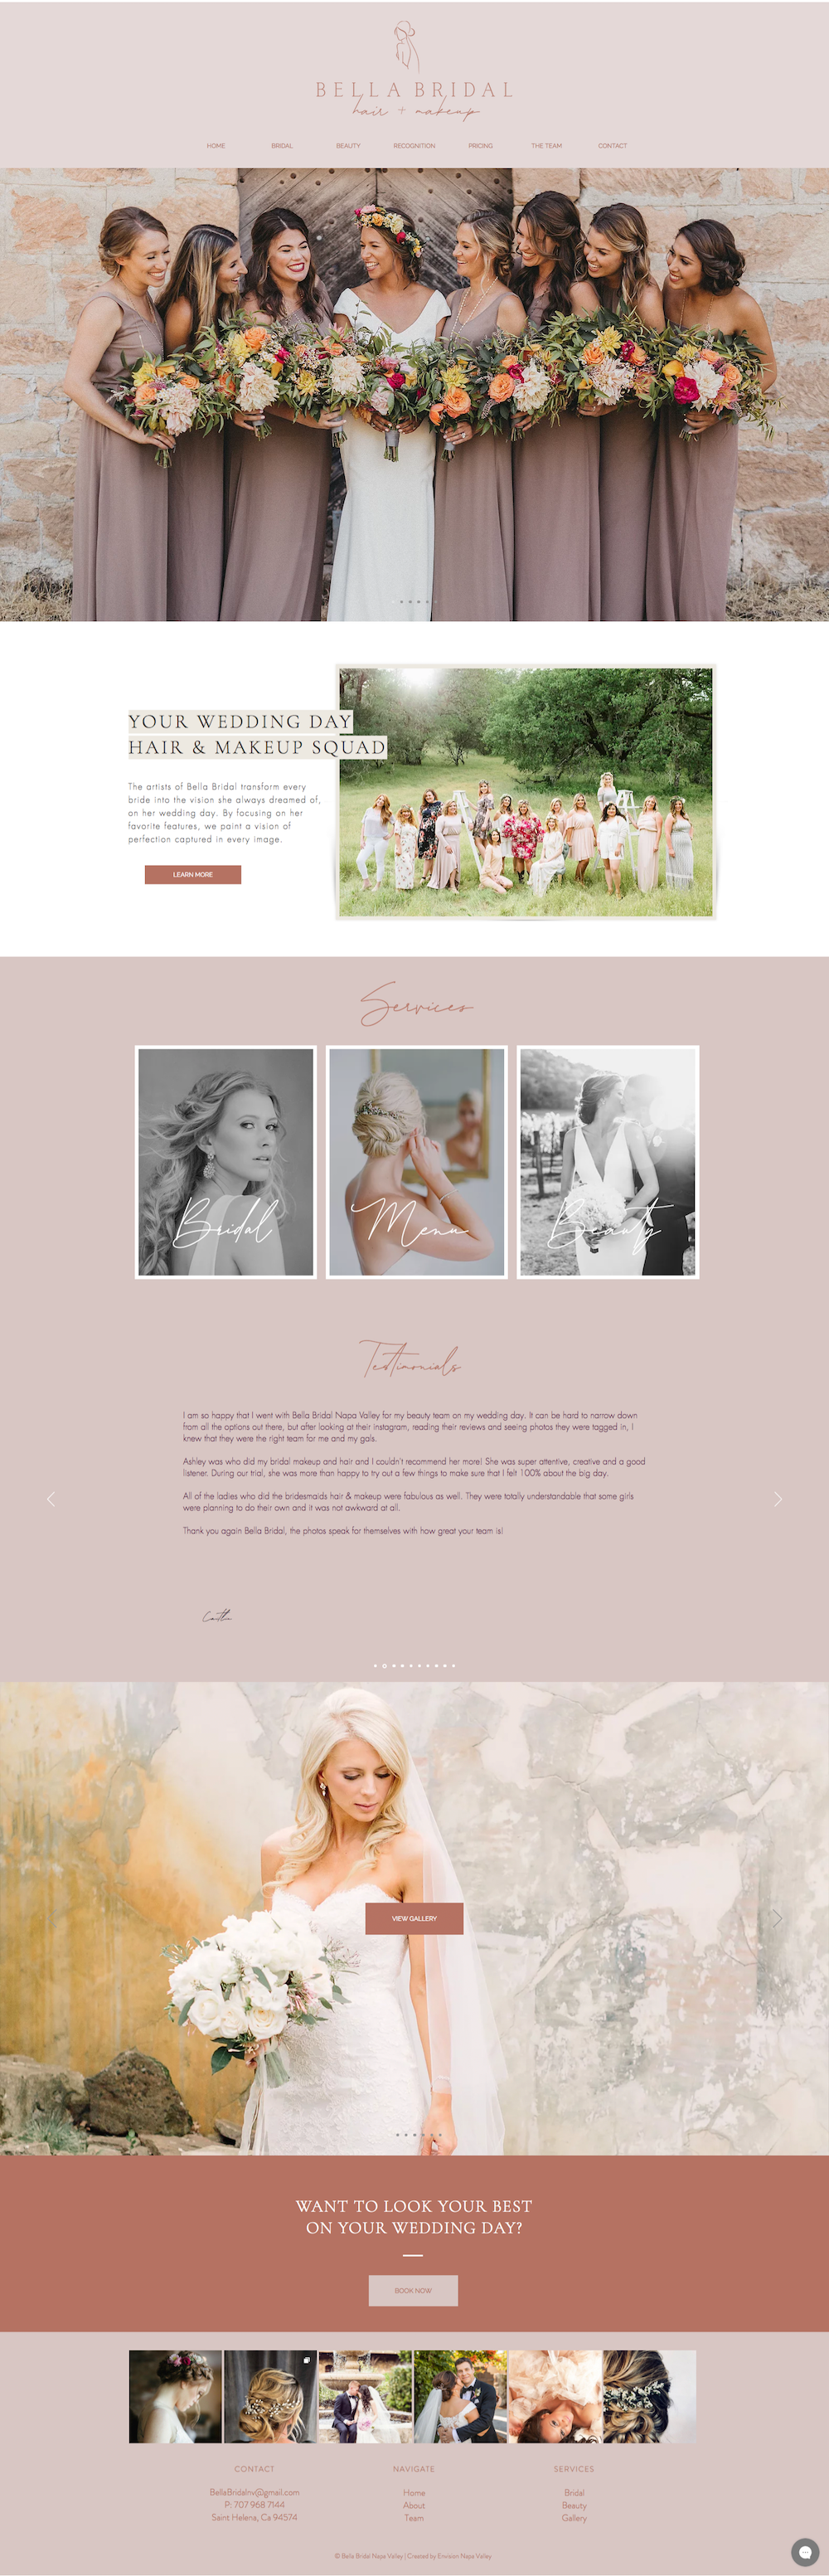 Website Layout.png